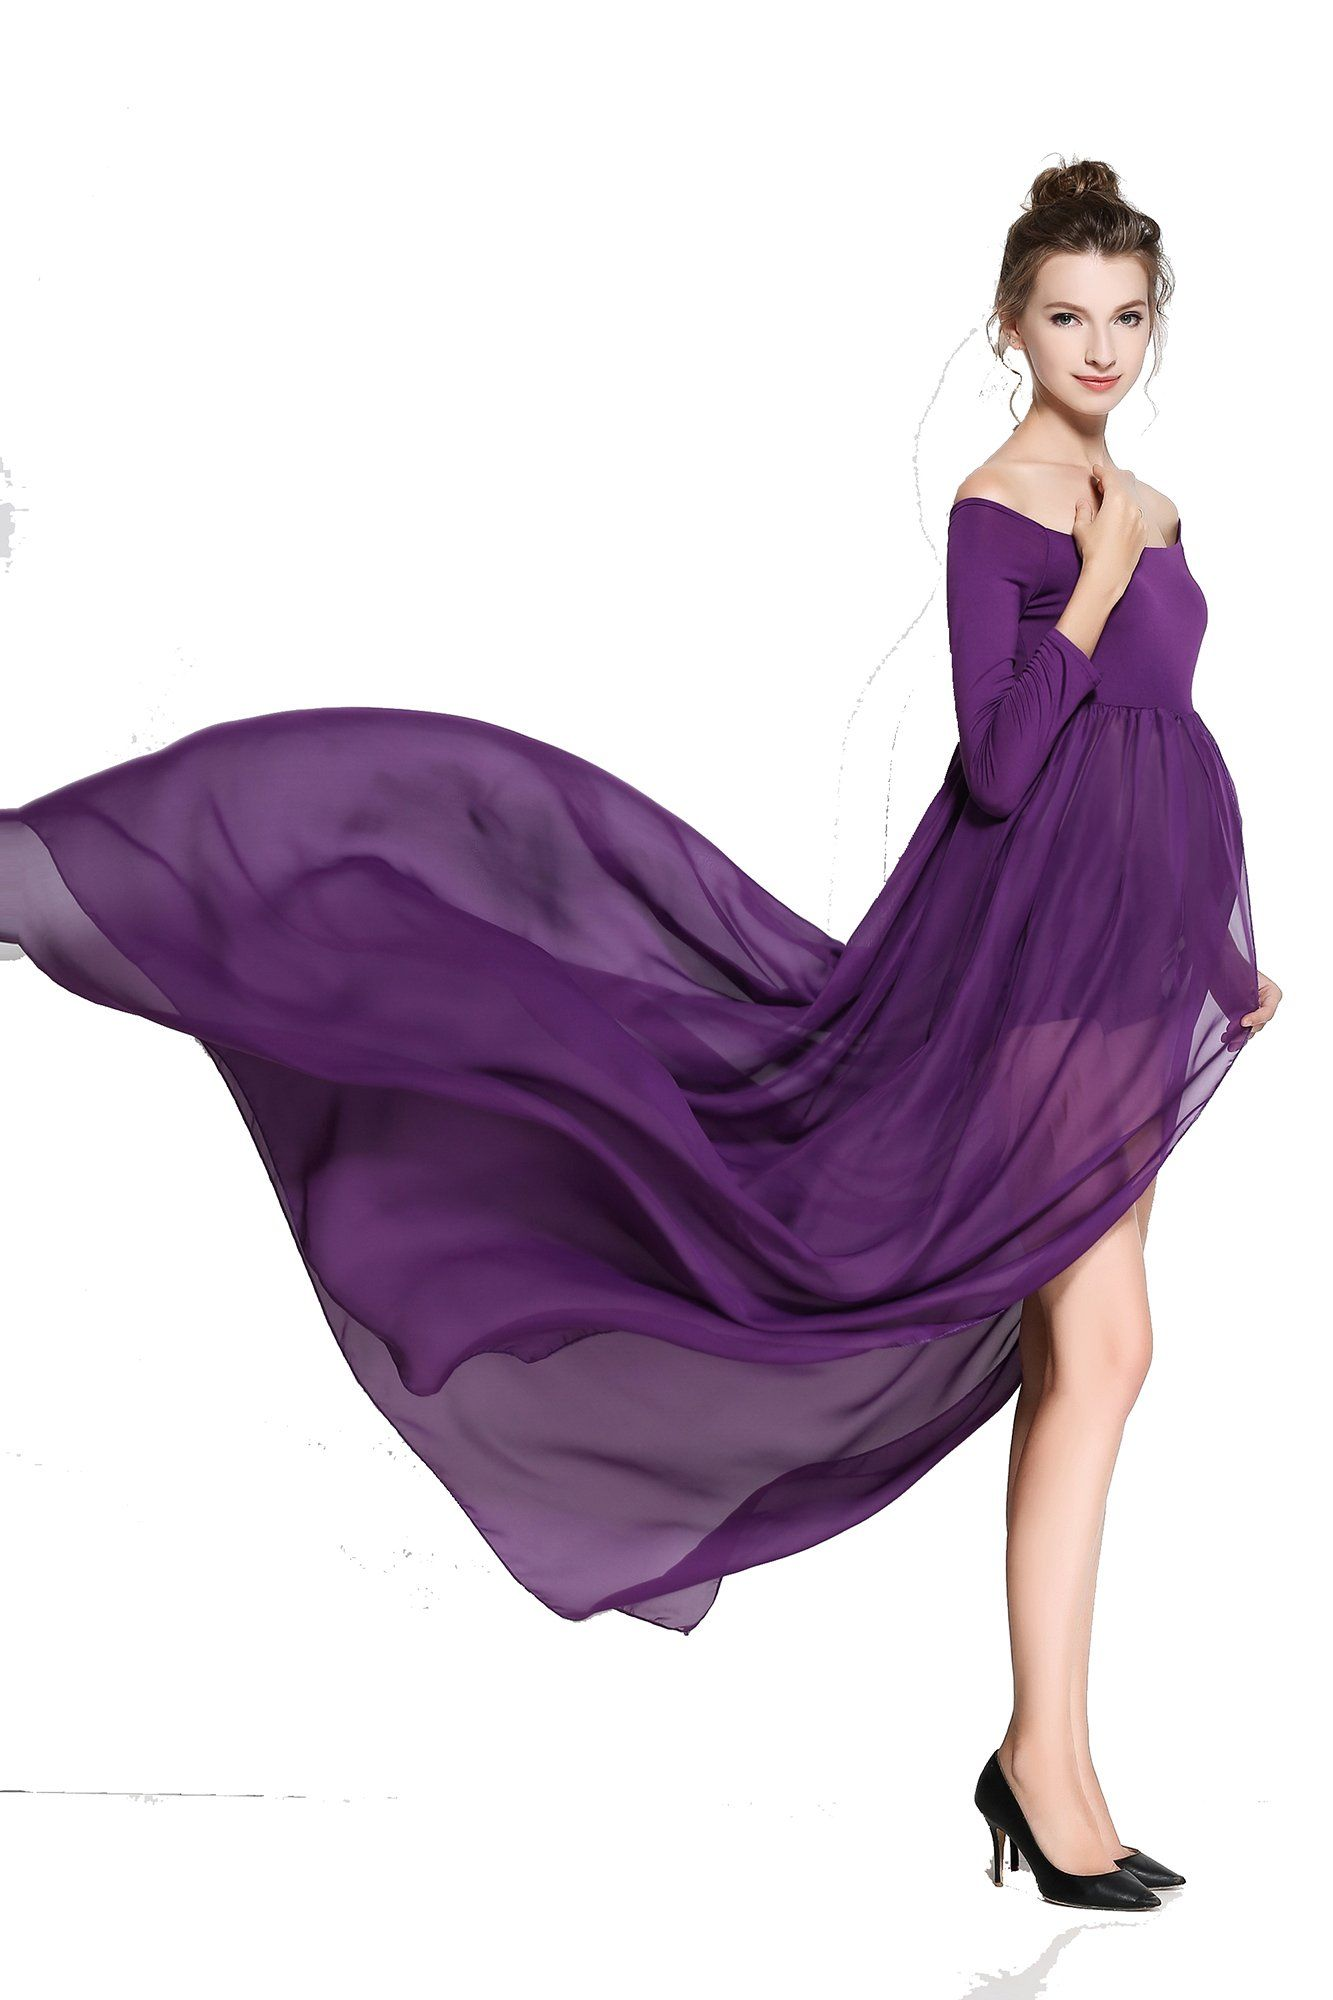 79bf8651cb3c0c Maternity Styles - skin-tight maternity dresses   WELIVE Womens Long Sleeve  Split Front Chiffon Maternity Gown Maternity Dress Photography Dress      Learn ...